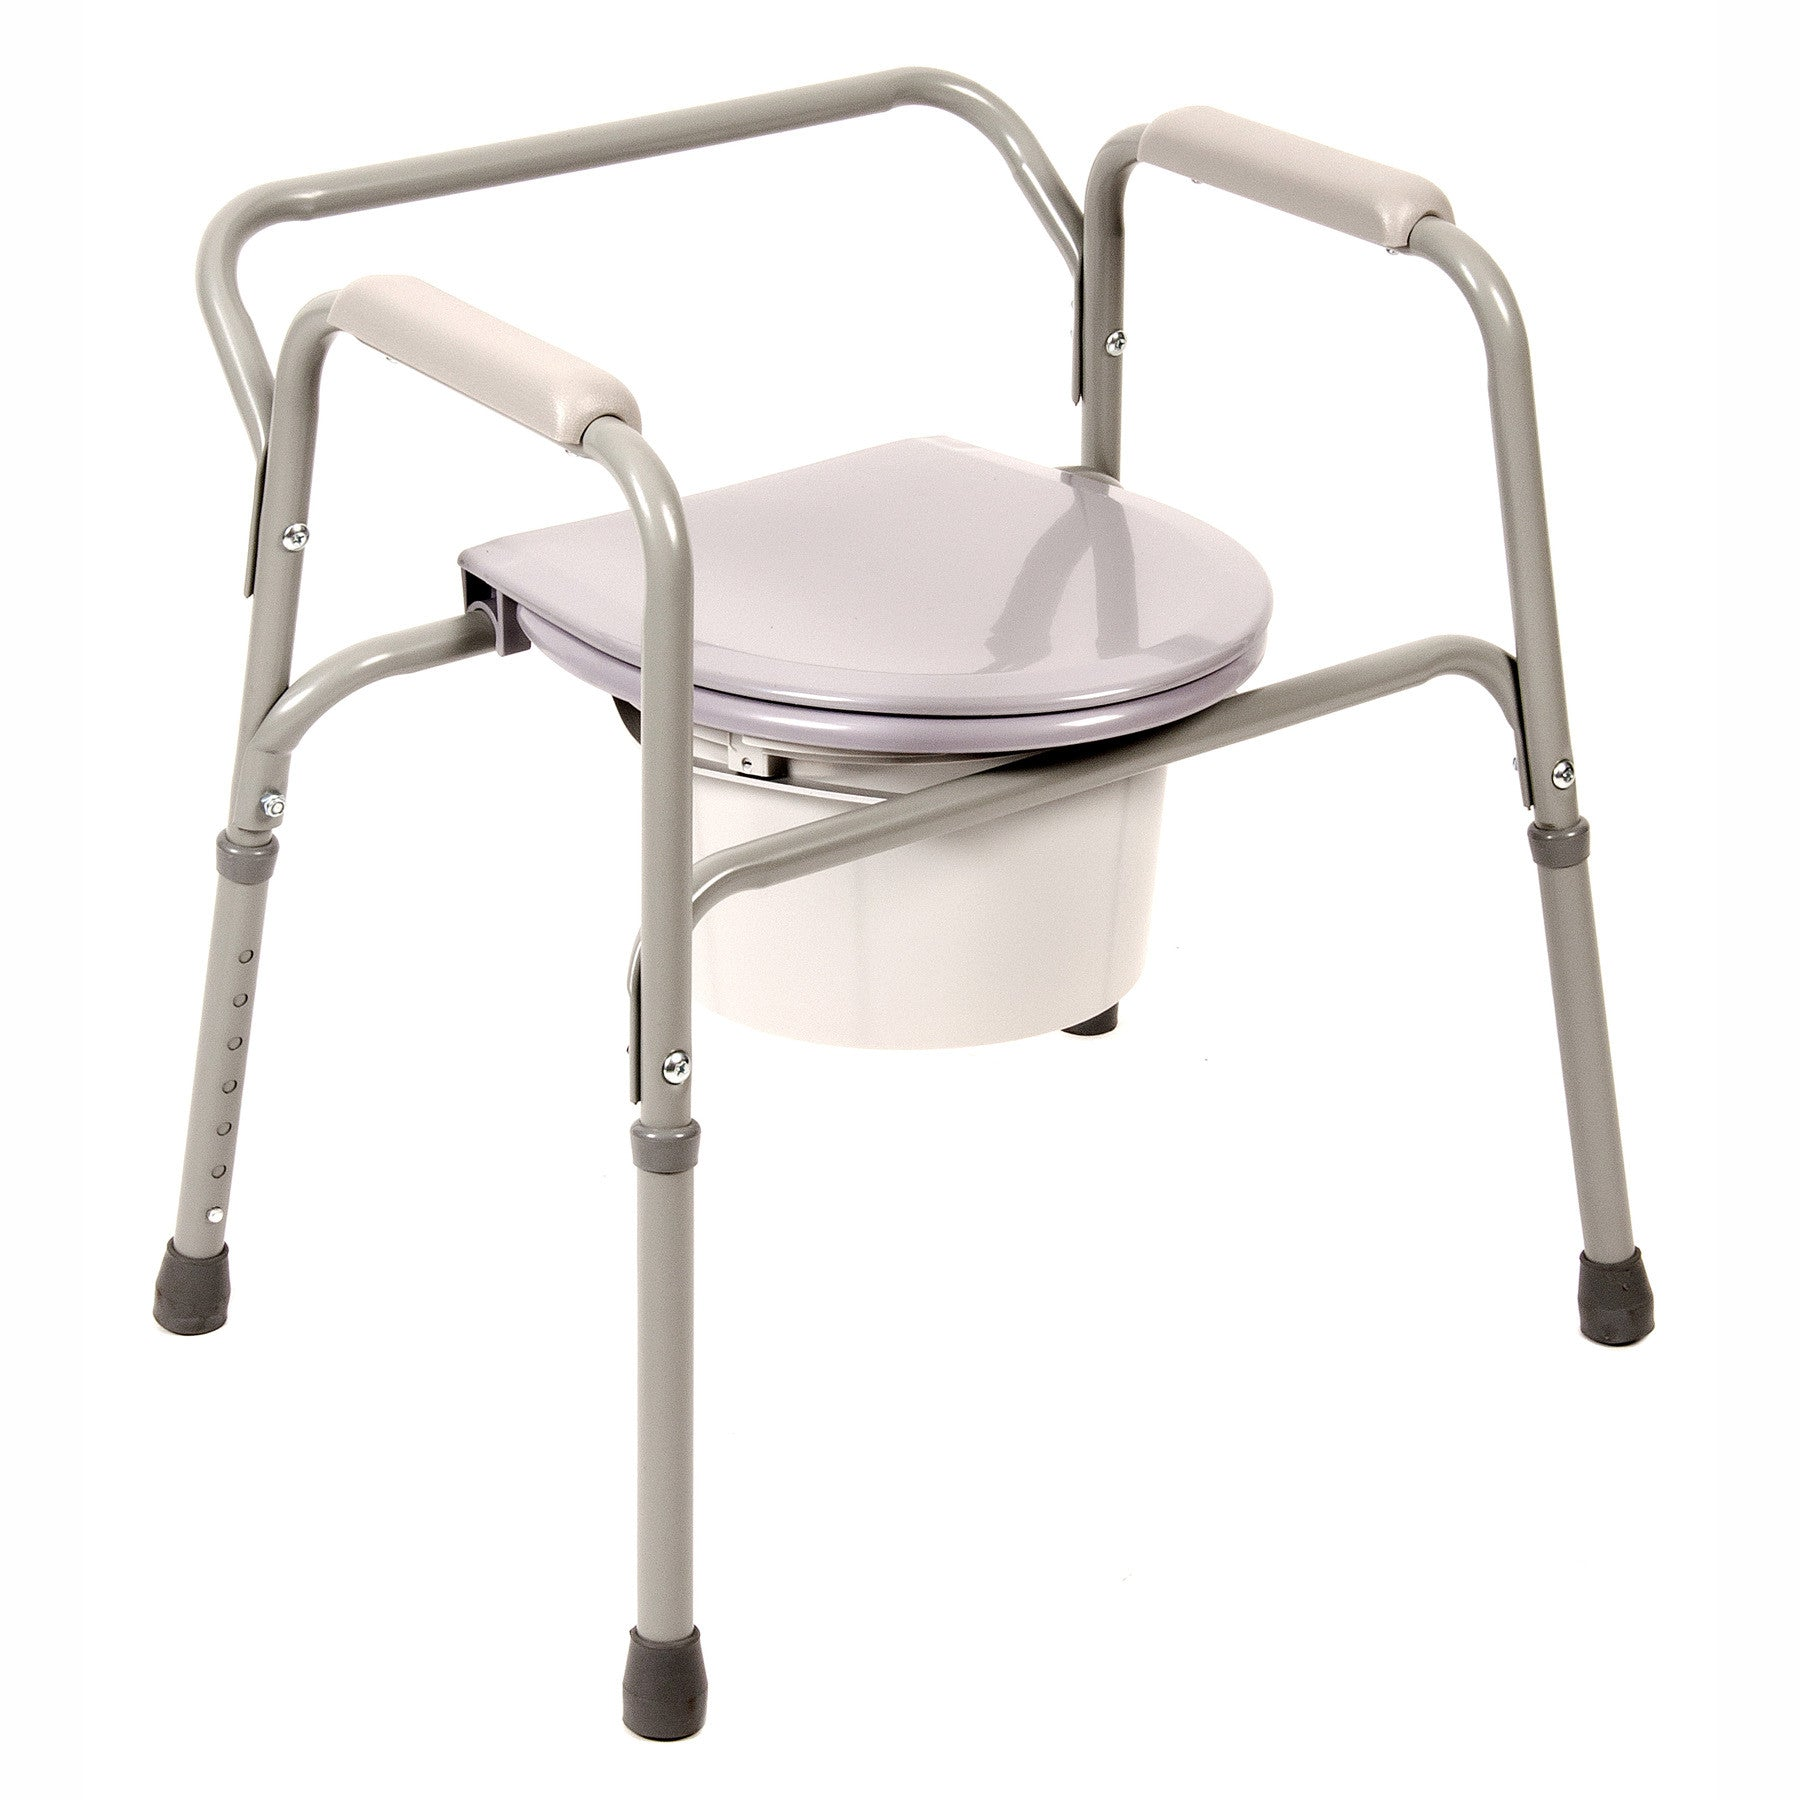 3-in-1 Commode w/ Removable Back Rest - Free Shipping - Home Medical ...